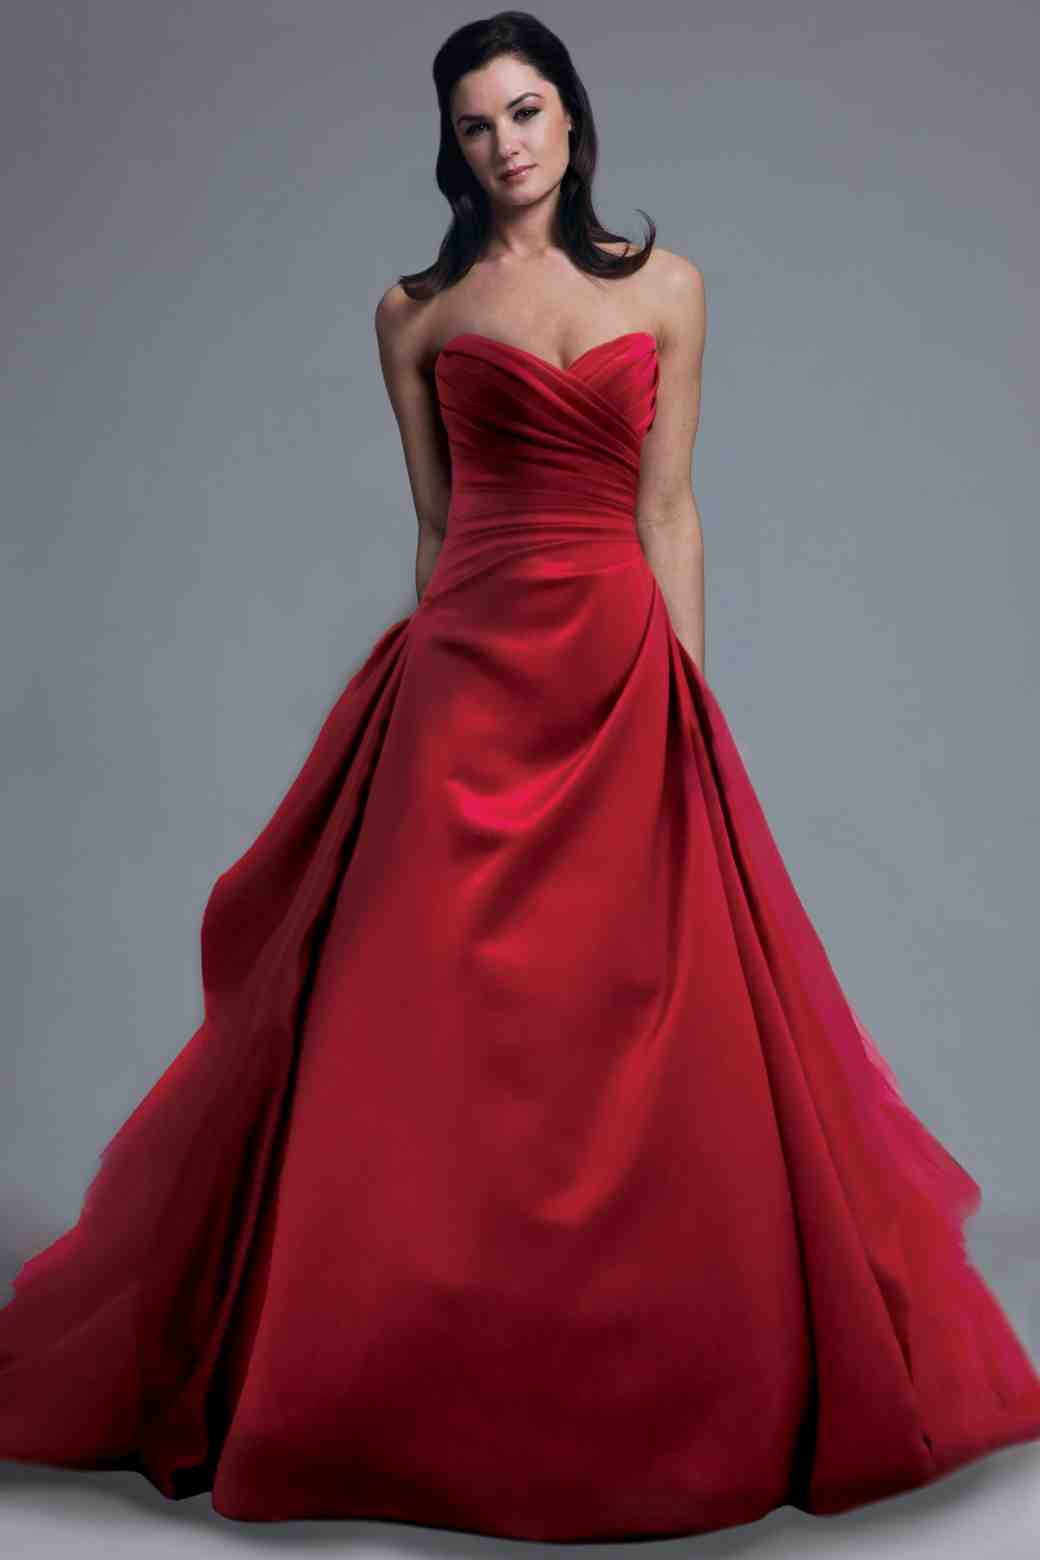 Amazing Red Wedding Dresses  Cherry Marry. Wedding Guest Dresses Glasgow. Black Bridesmaid Dresses Okay. Strapless Mermaid Wedding Dresses With Bling. Lace Wedding Dresses Gold Coast. Blush Wedding Dress Veil. Indian Wedding Dresses For Sale. Beautiful Wedding Dresses In London. Sweetheart Neckline Wedding Dresses For Plus Size